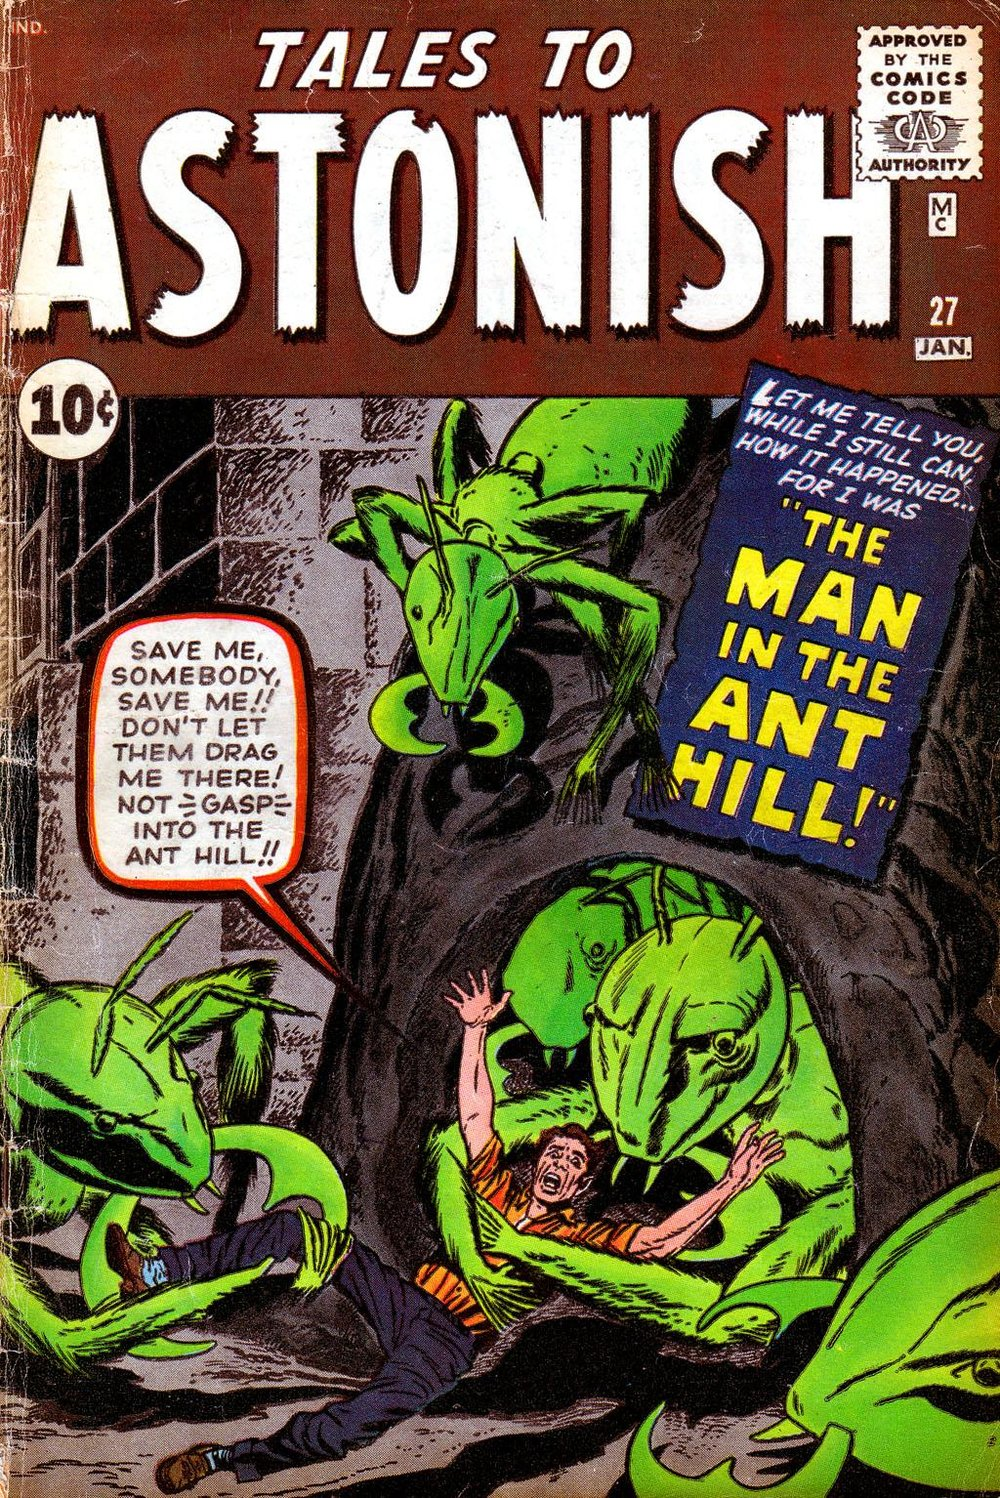 Man, those are no ants. Look at the Vampire fangs, those hands, and the coloring. It's like they're all green aliens!